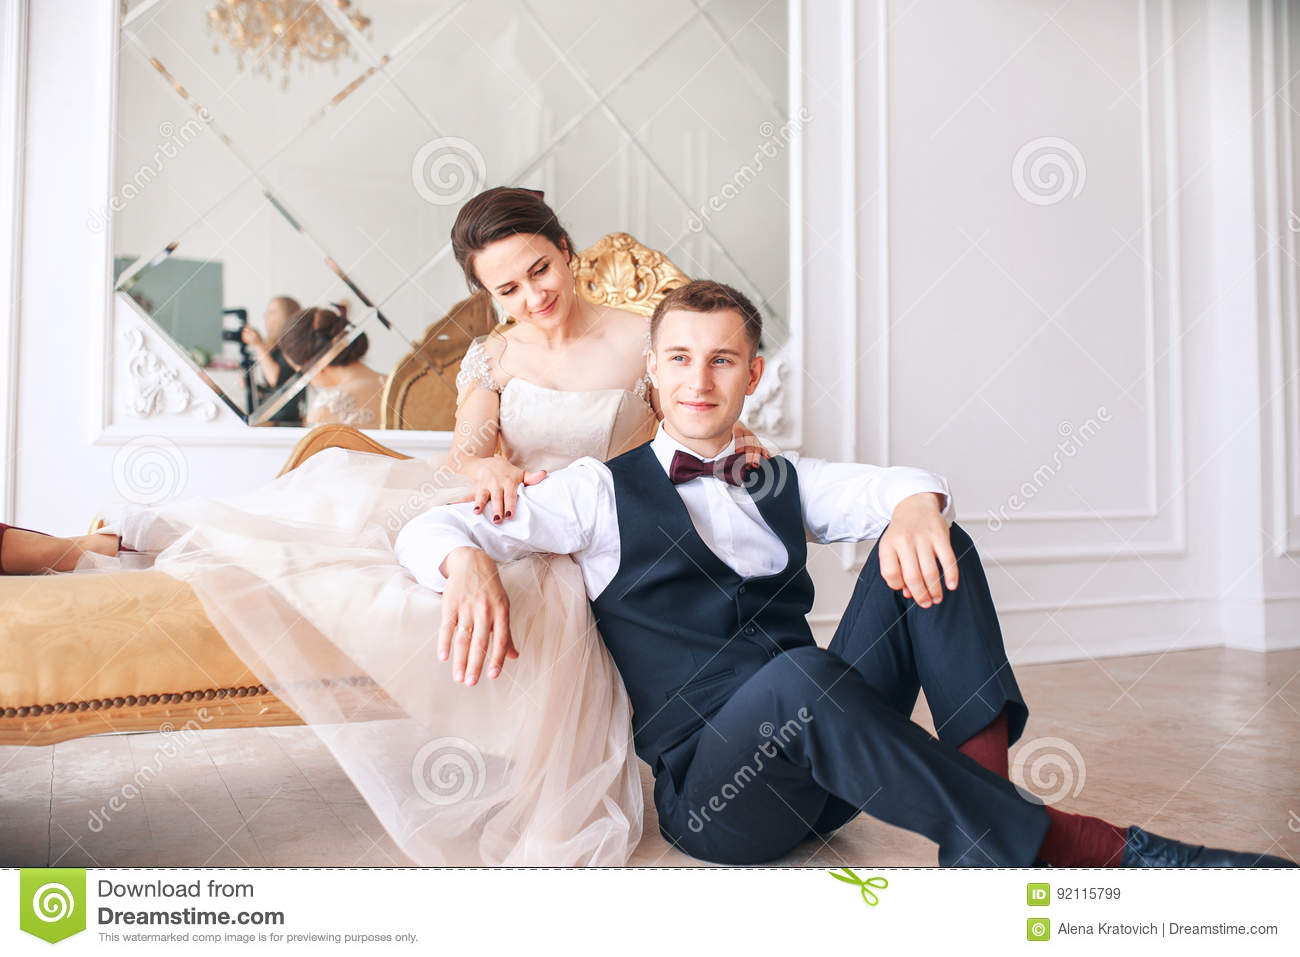 c160aaba6d1 Bride in beautiful dress and groom in black suit sitting on sofa indoors in  white studio interior like at home. Trendy wedding style .bride huggging  Groom